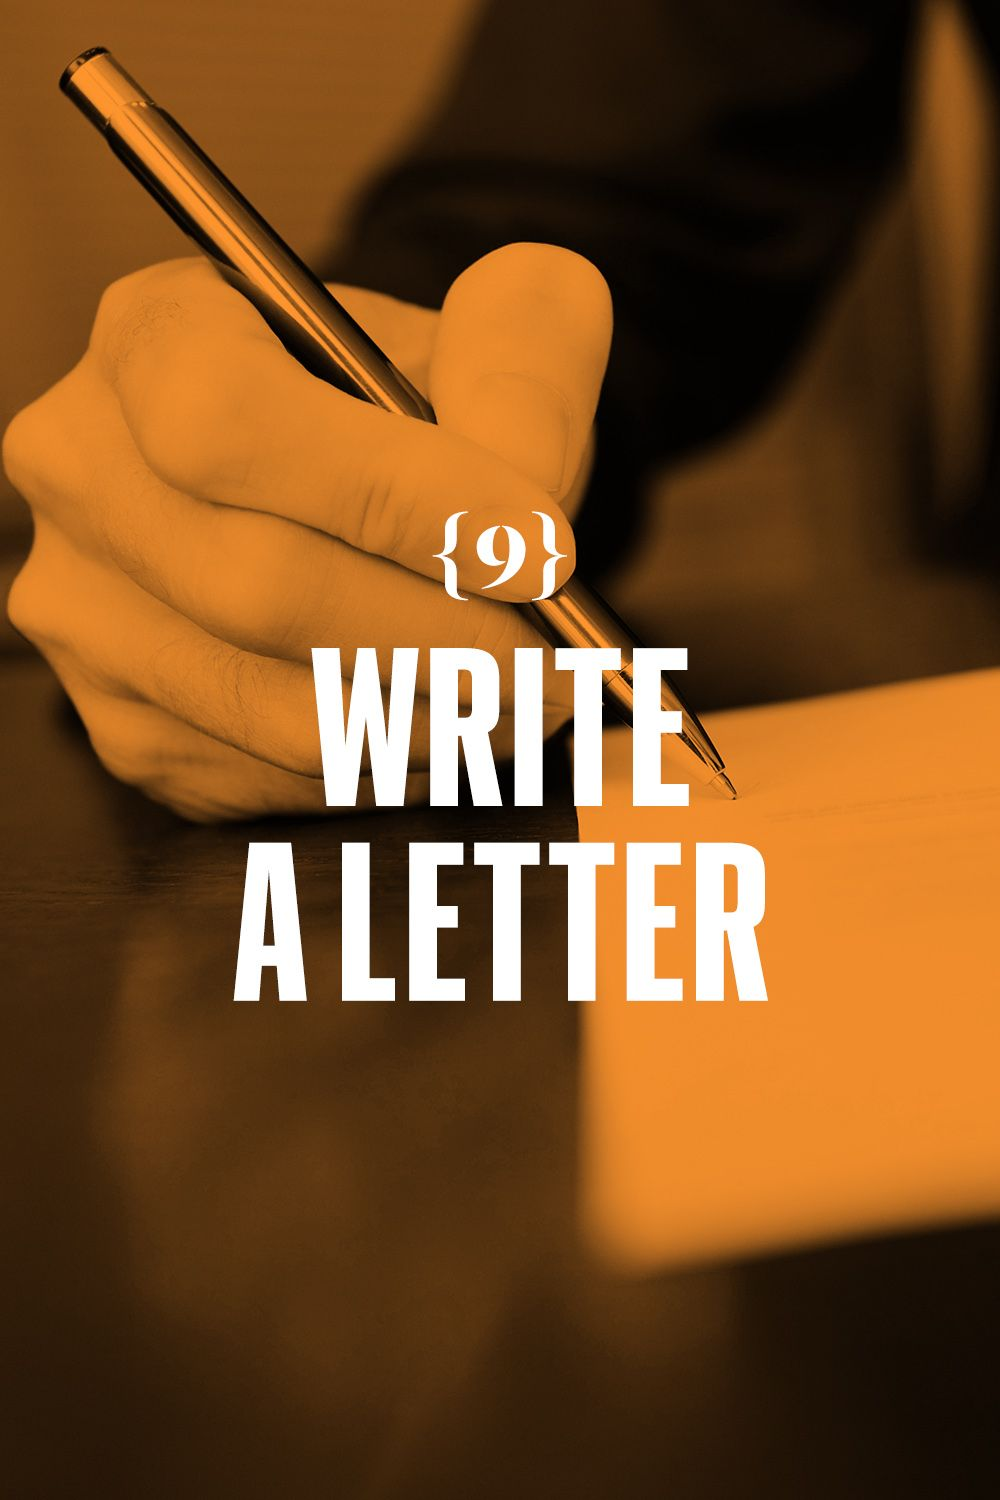 <p>Write a letter. So easy. So easily forgotten. A five-paragraph structure works pretty well: Tell why you're writing. Offer details. Ask questions. Give news. Add a specific memory or two. If your handwriting is terrible, type. Always close formally. </p>